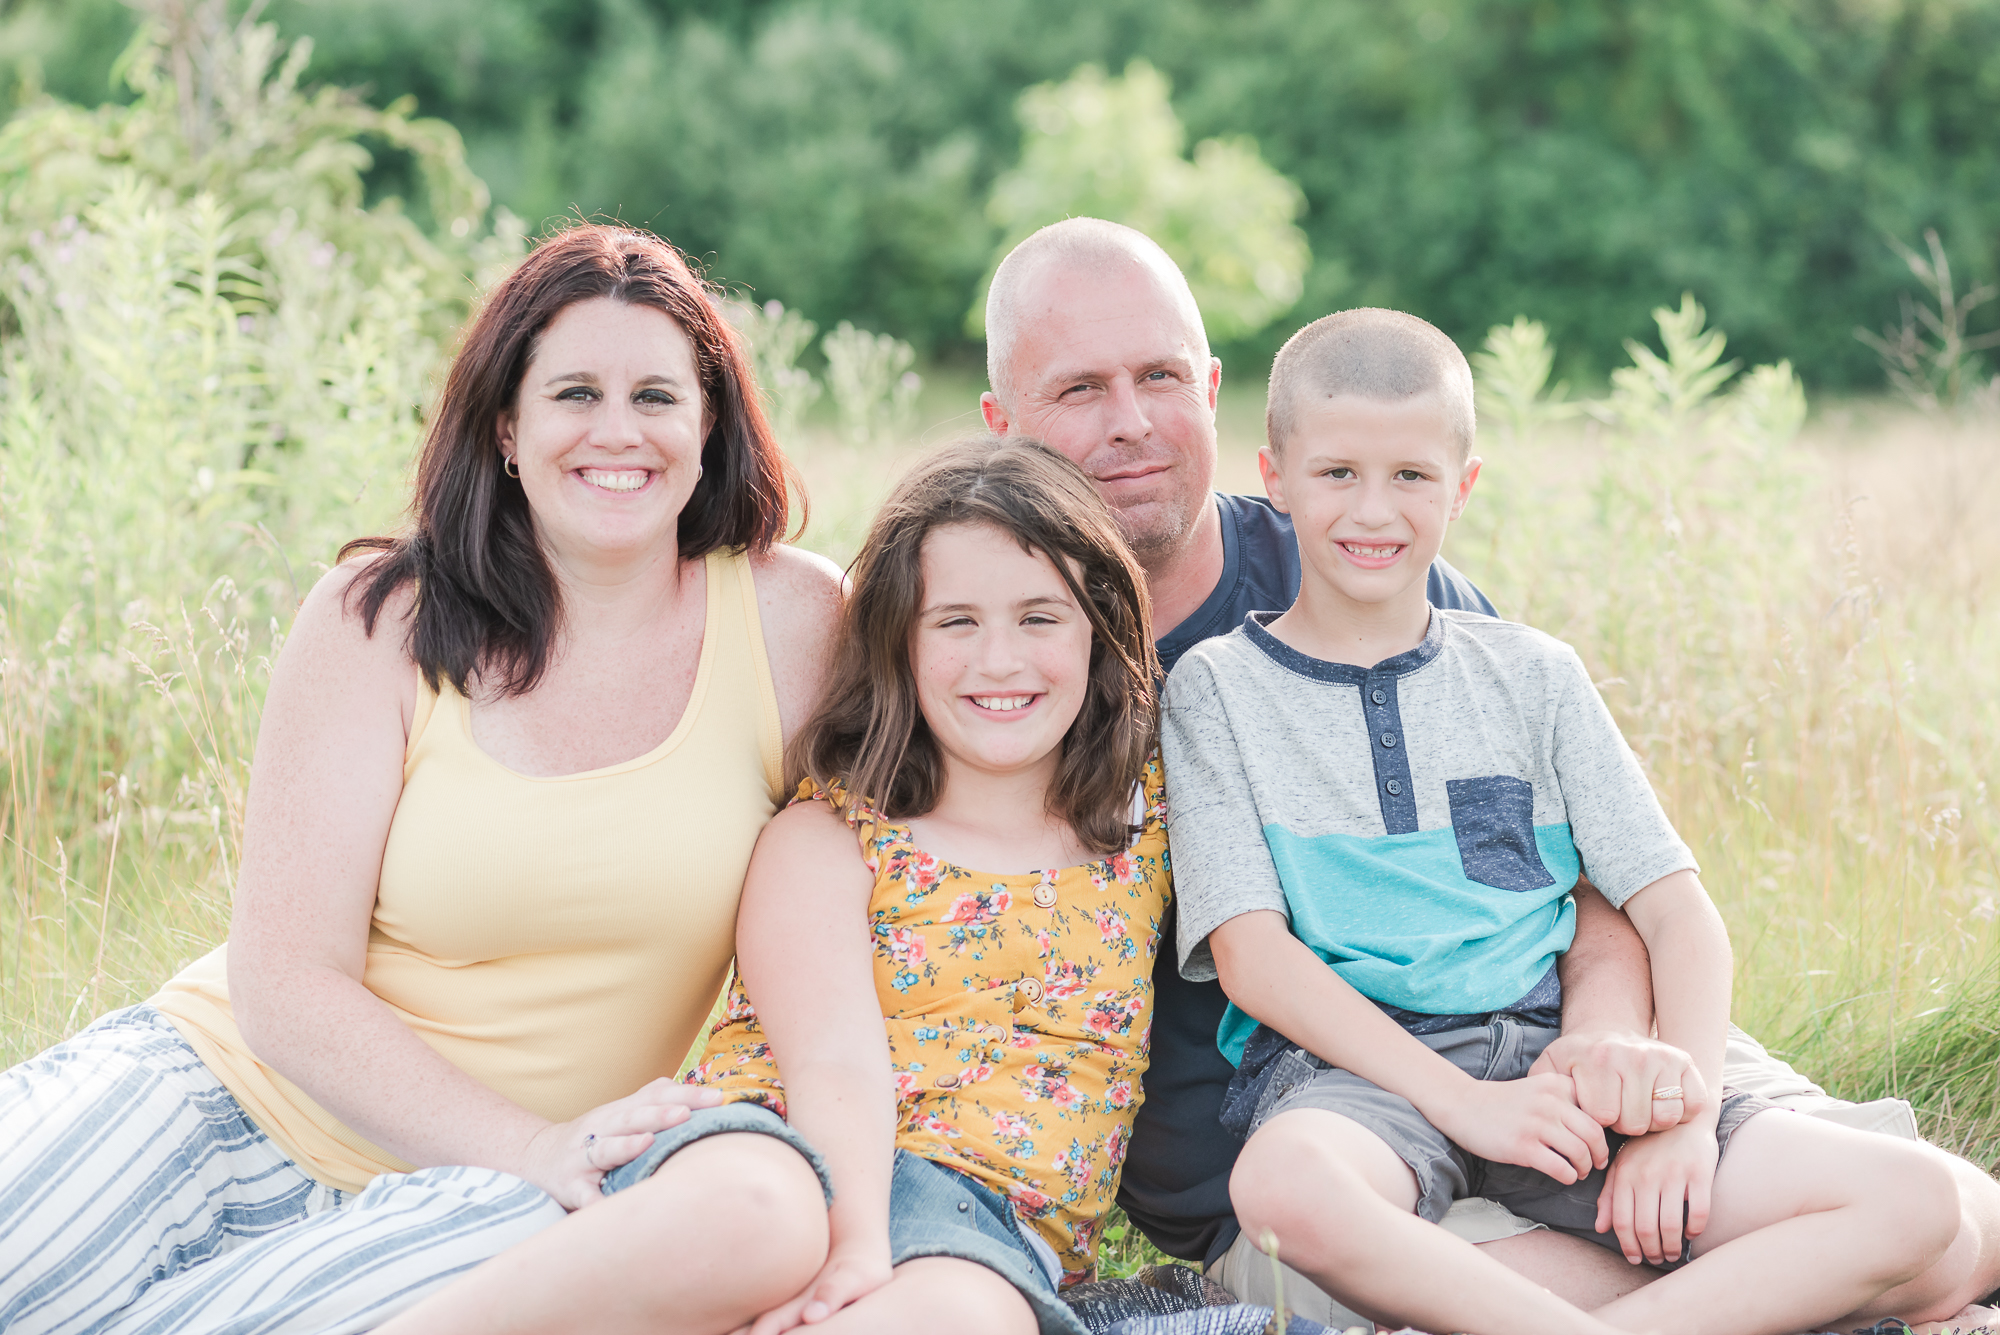 Summer_B Family Portraits Session_Mugrage Park_Medina_Ohio-39.jpg